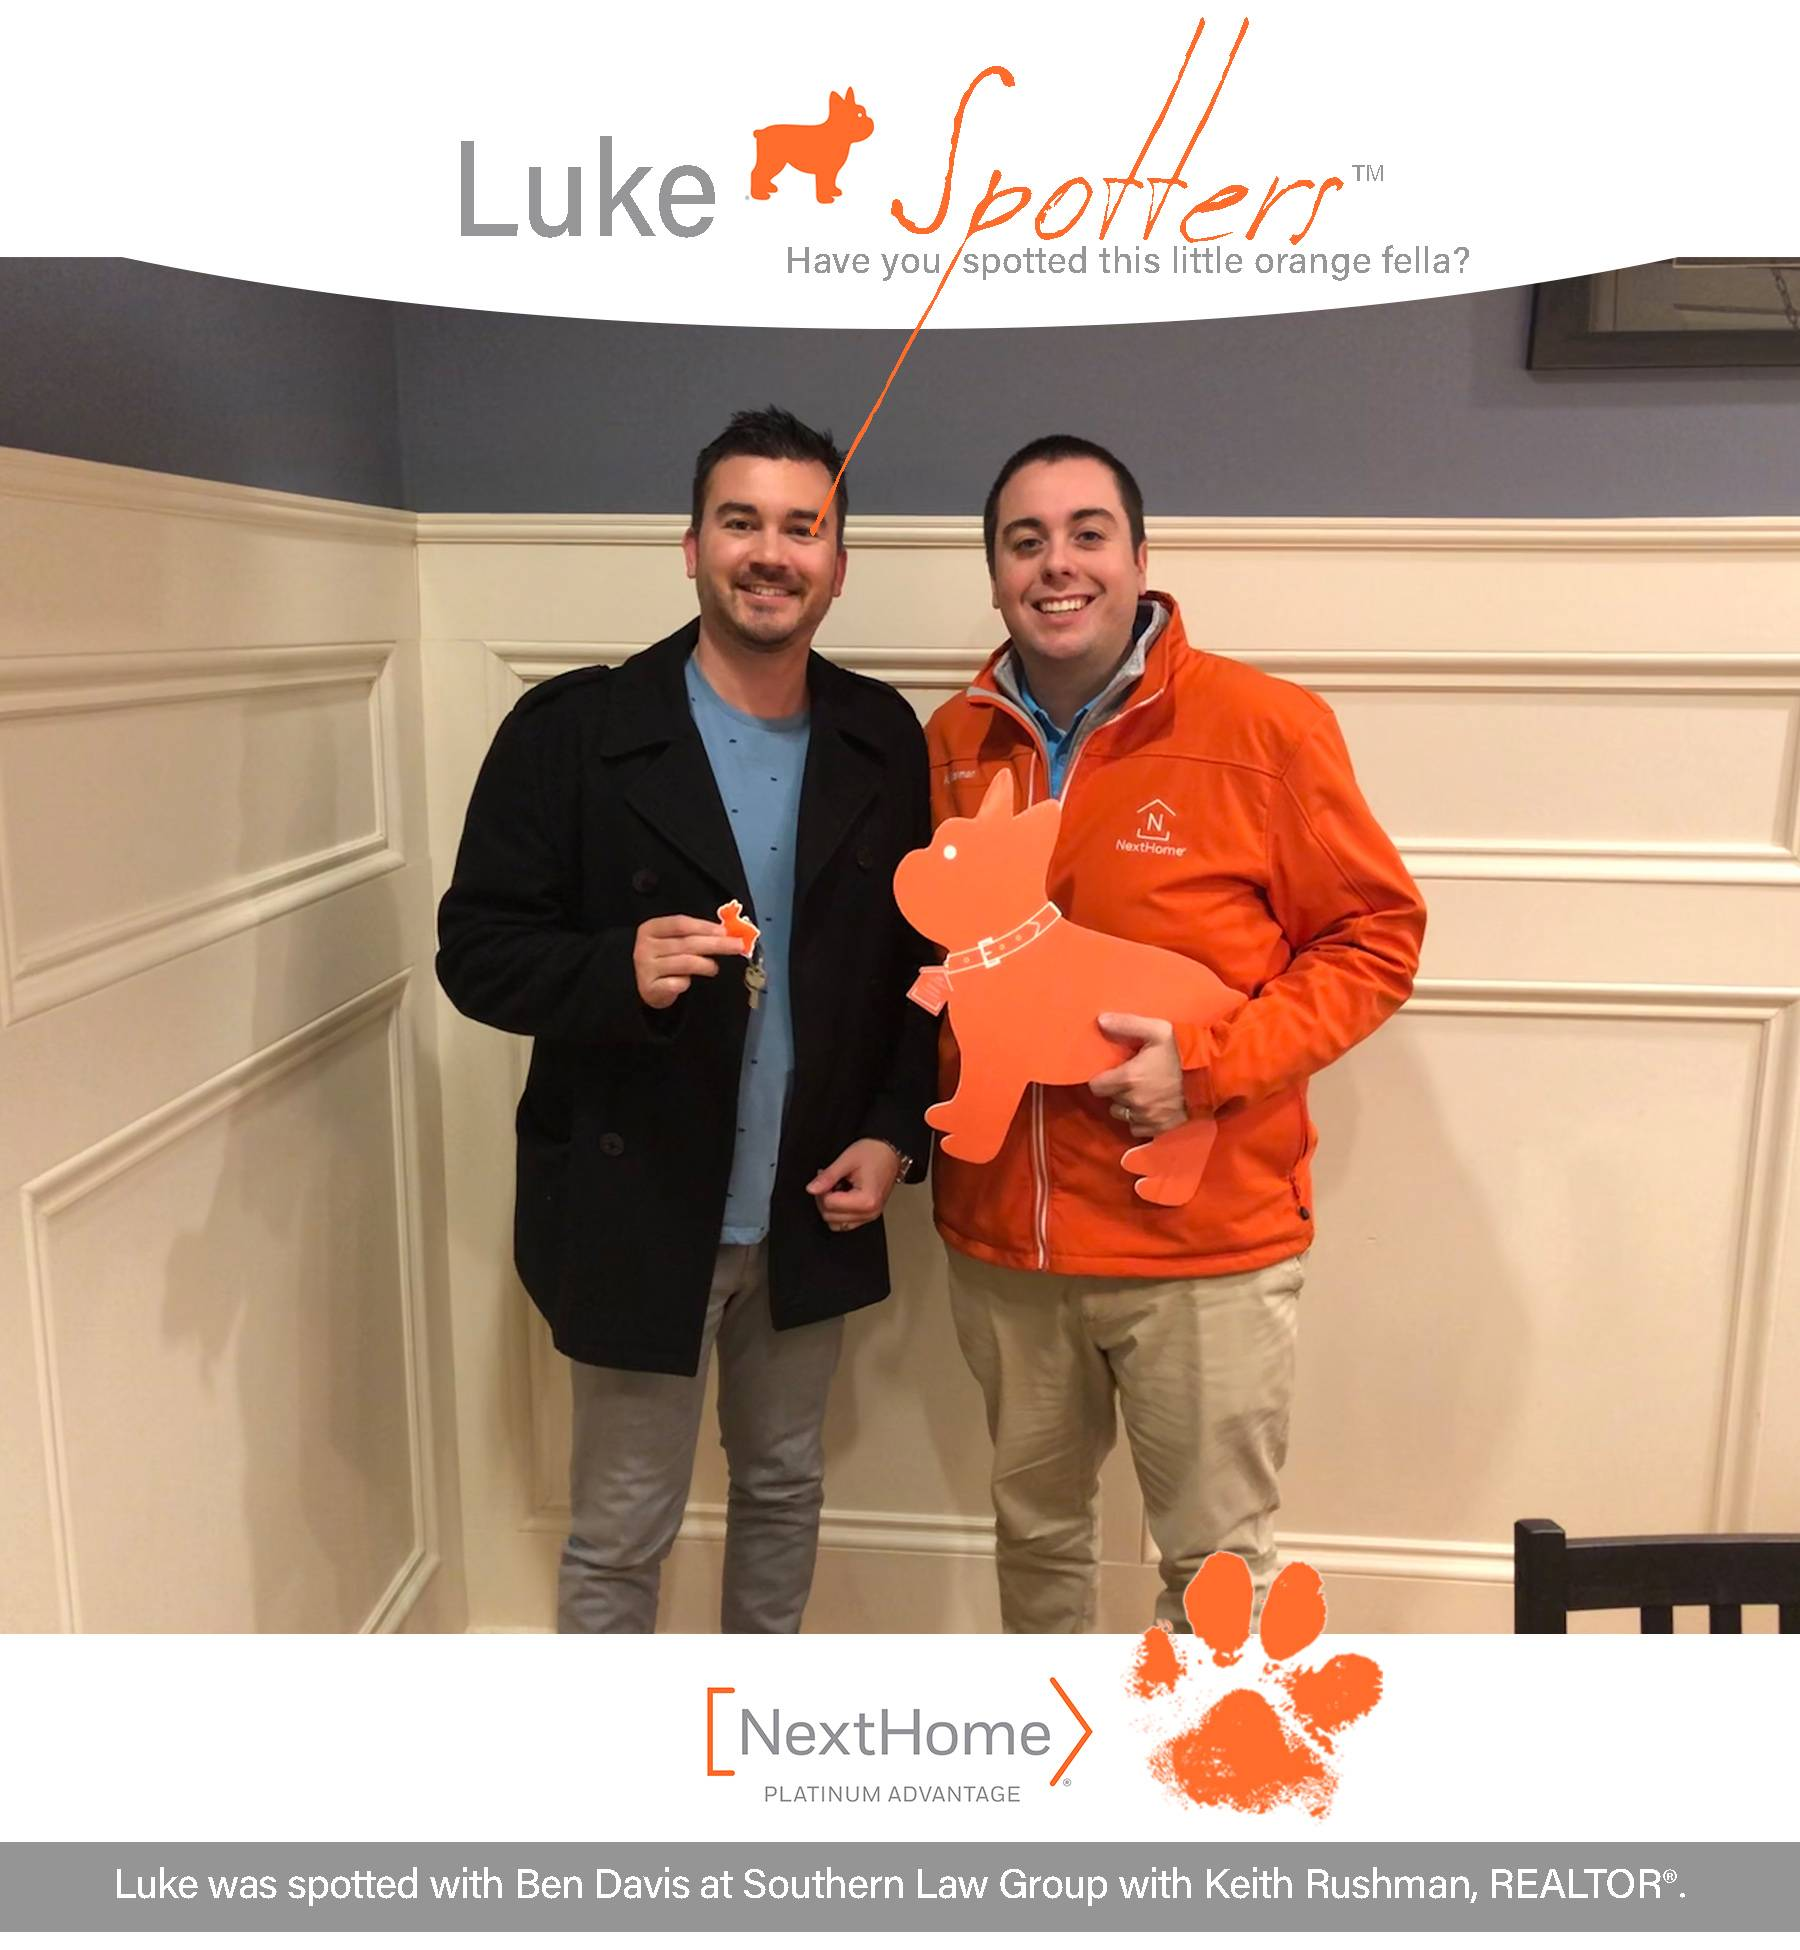 Luke was spotted with Ben Davis at Southern Law Group with Keith Rushman, REALTOR®.